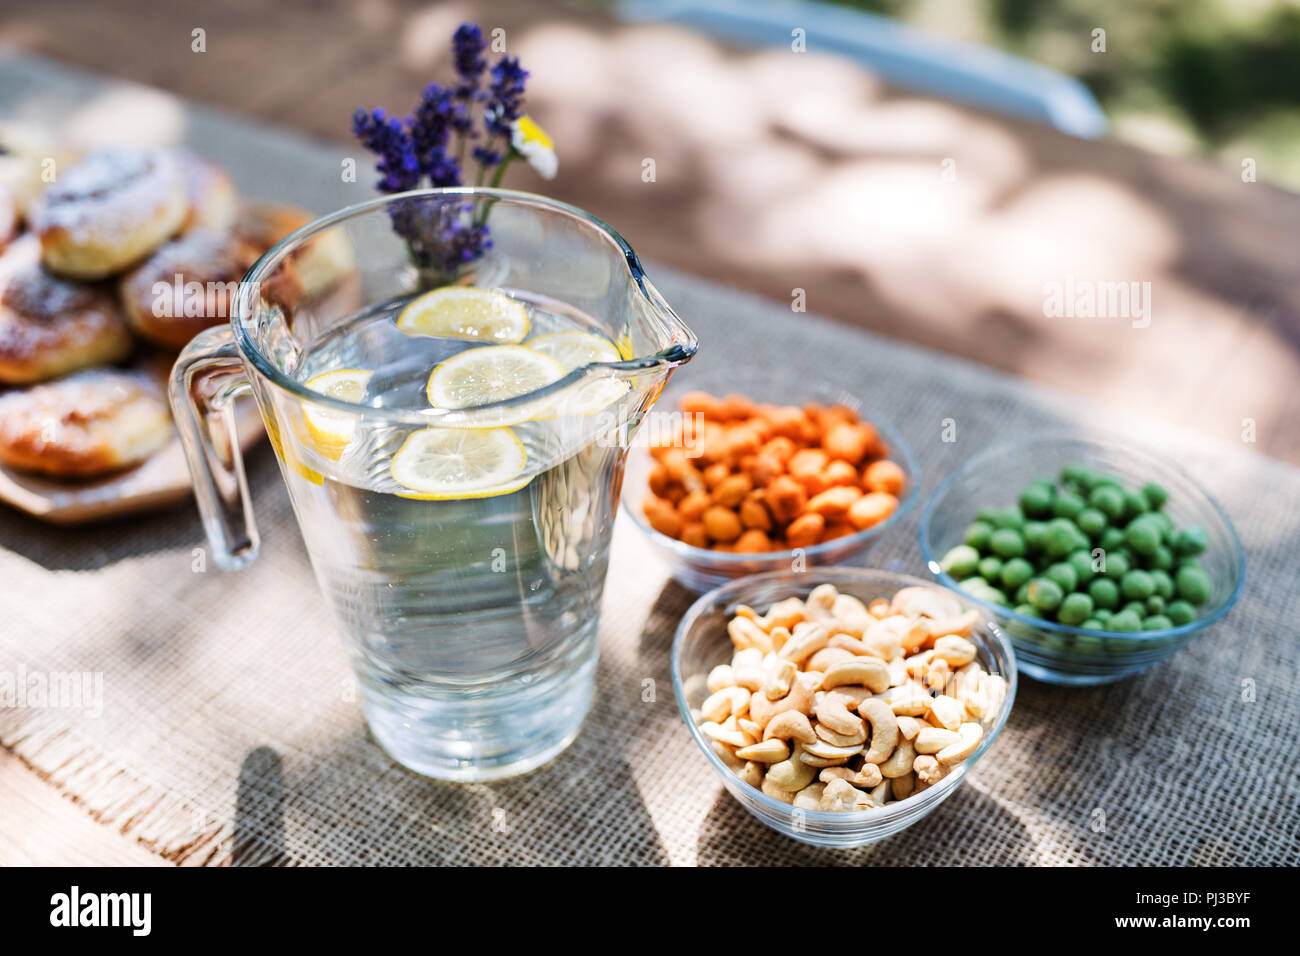 Table set for a garden party or celebration outside. - Stock Image